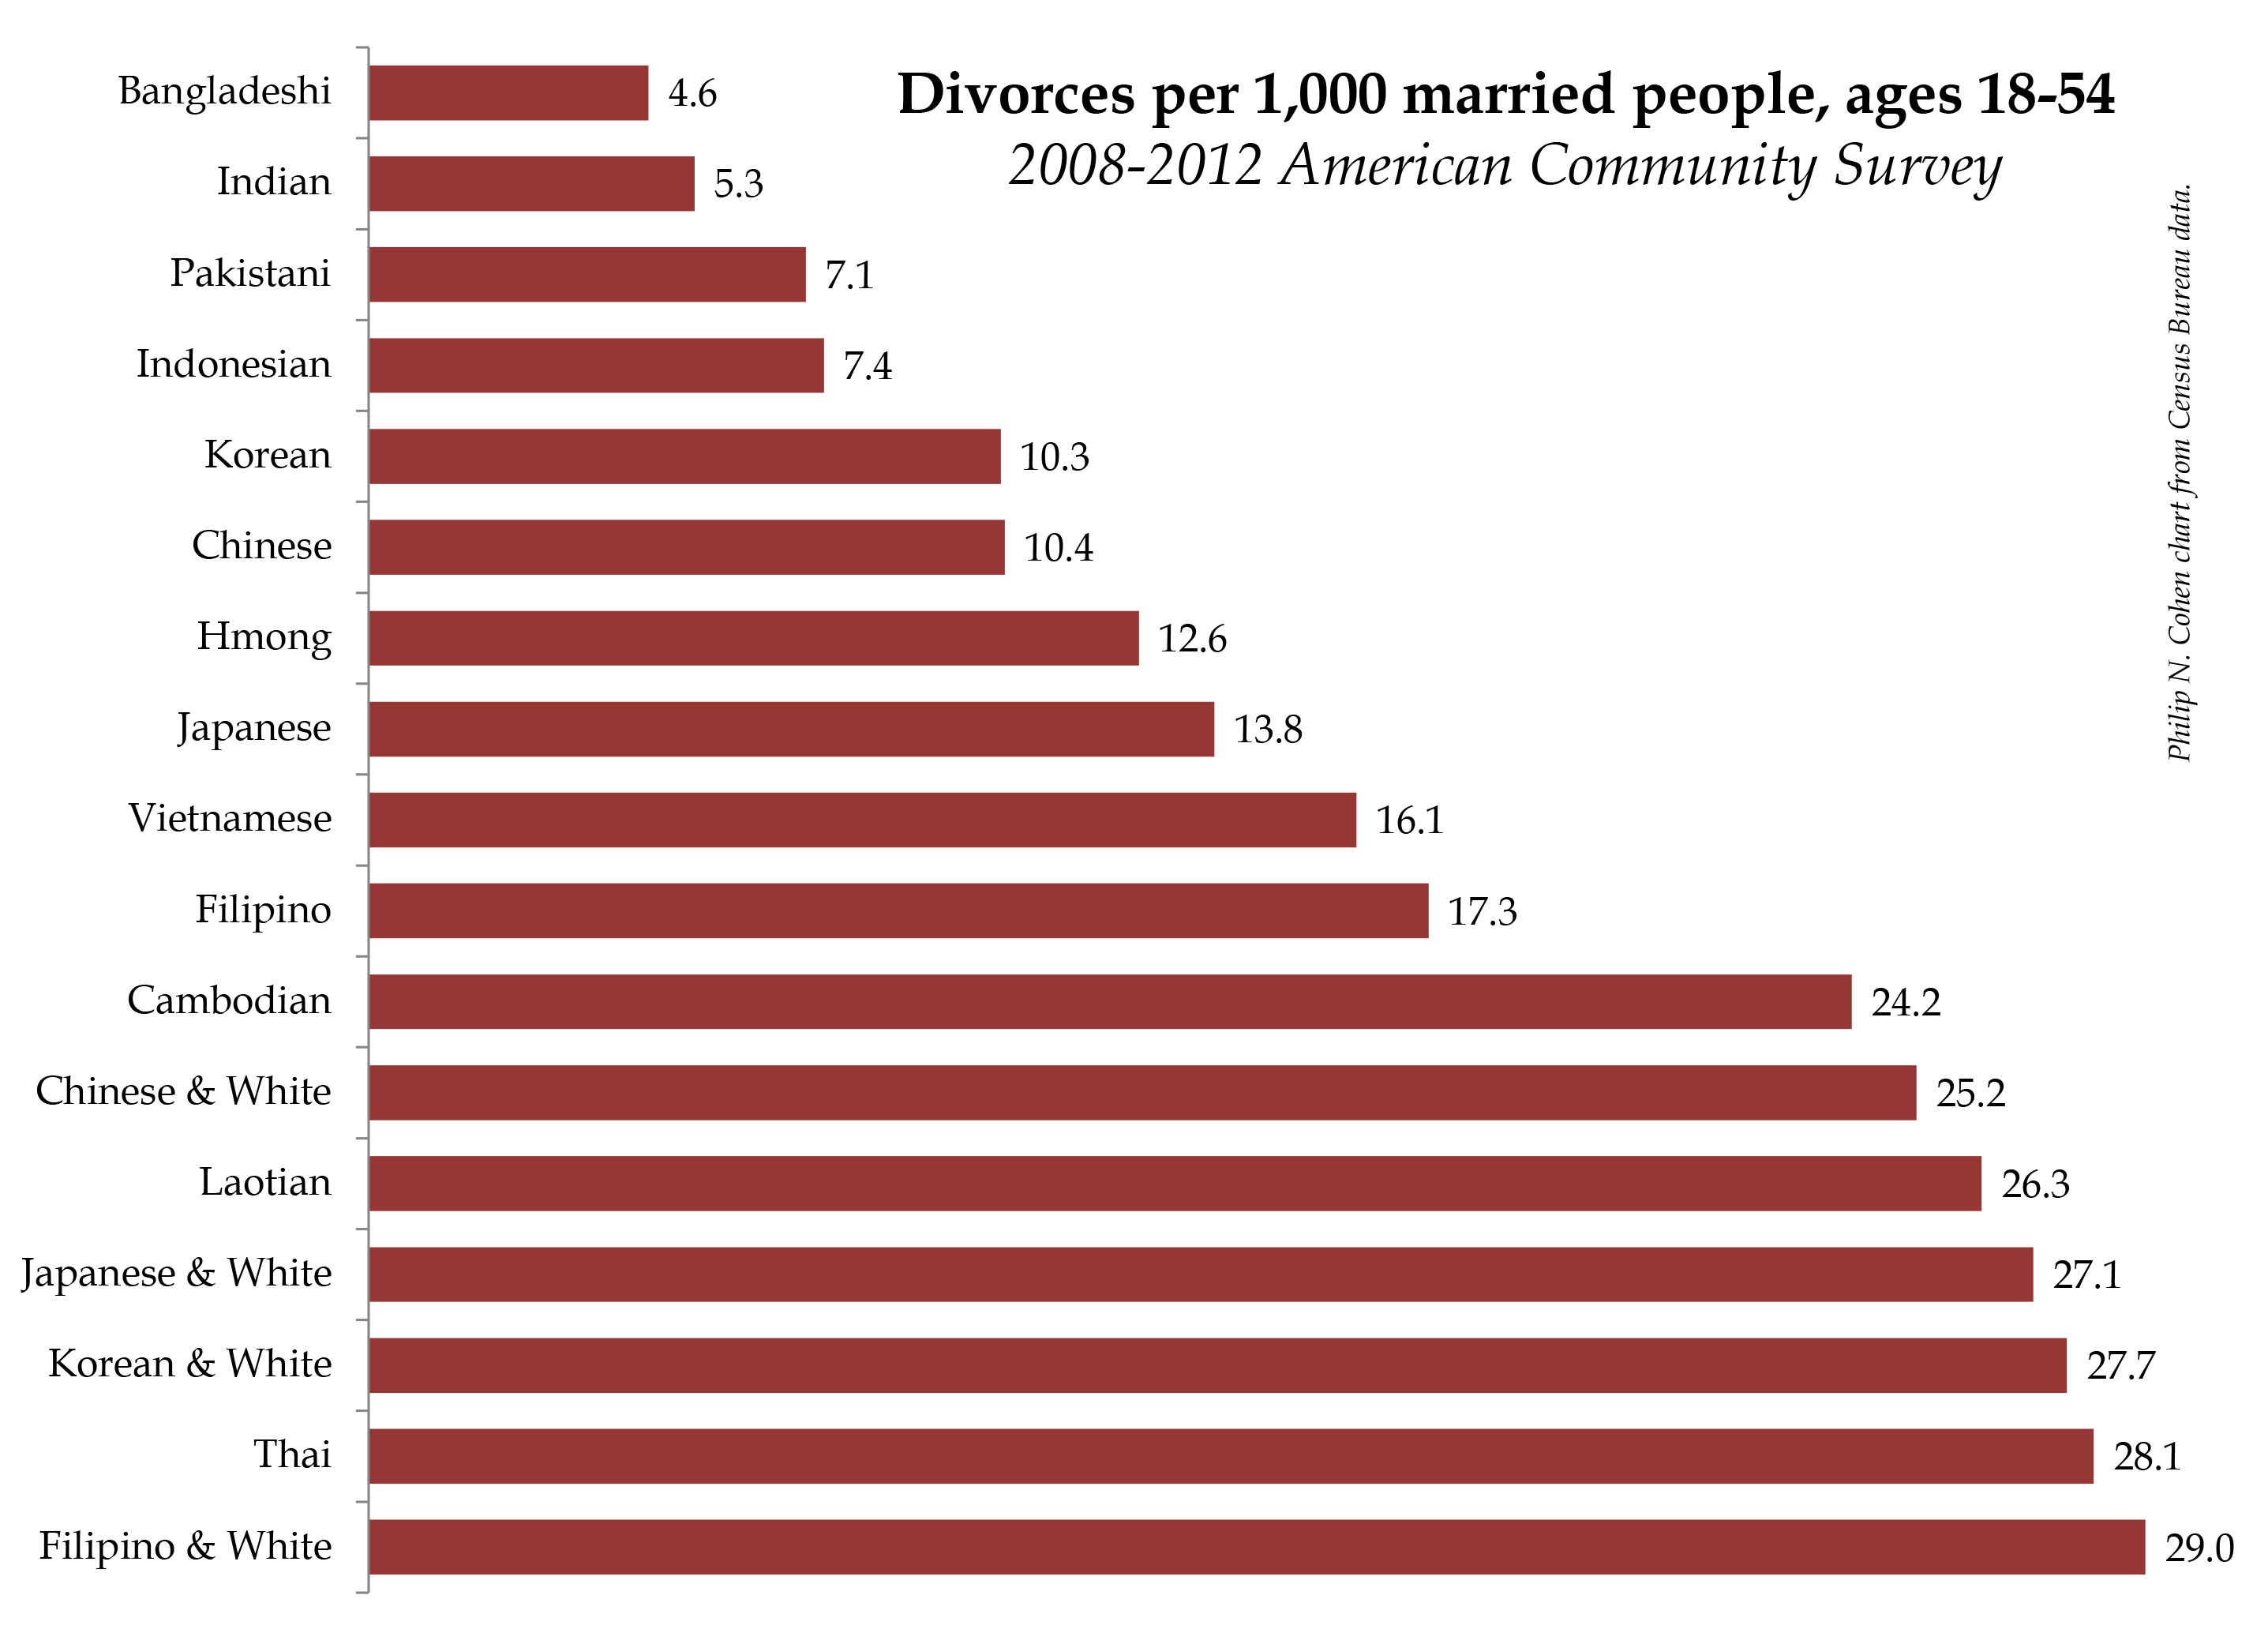 So you want to know the Asian divorce rate (save the ACS